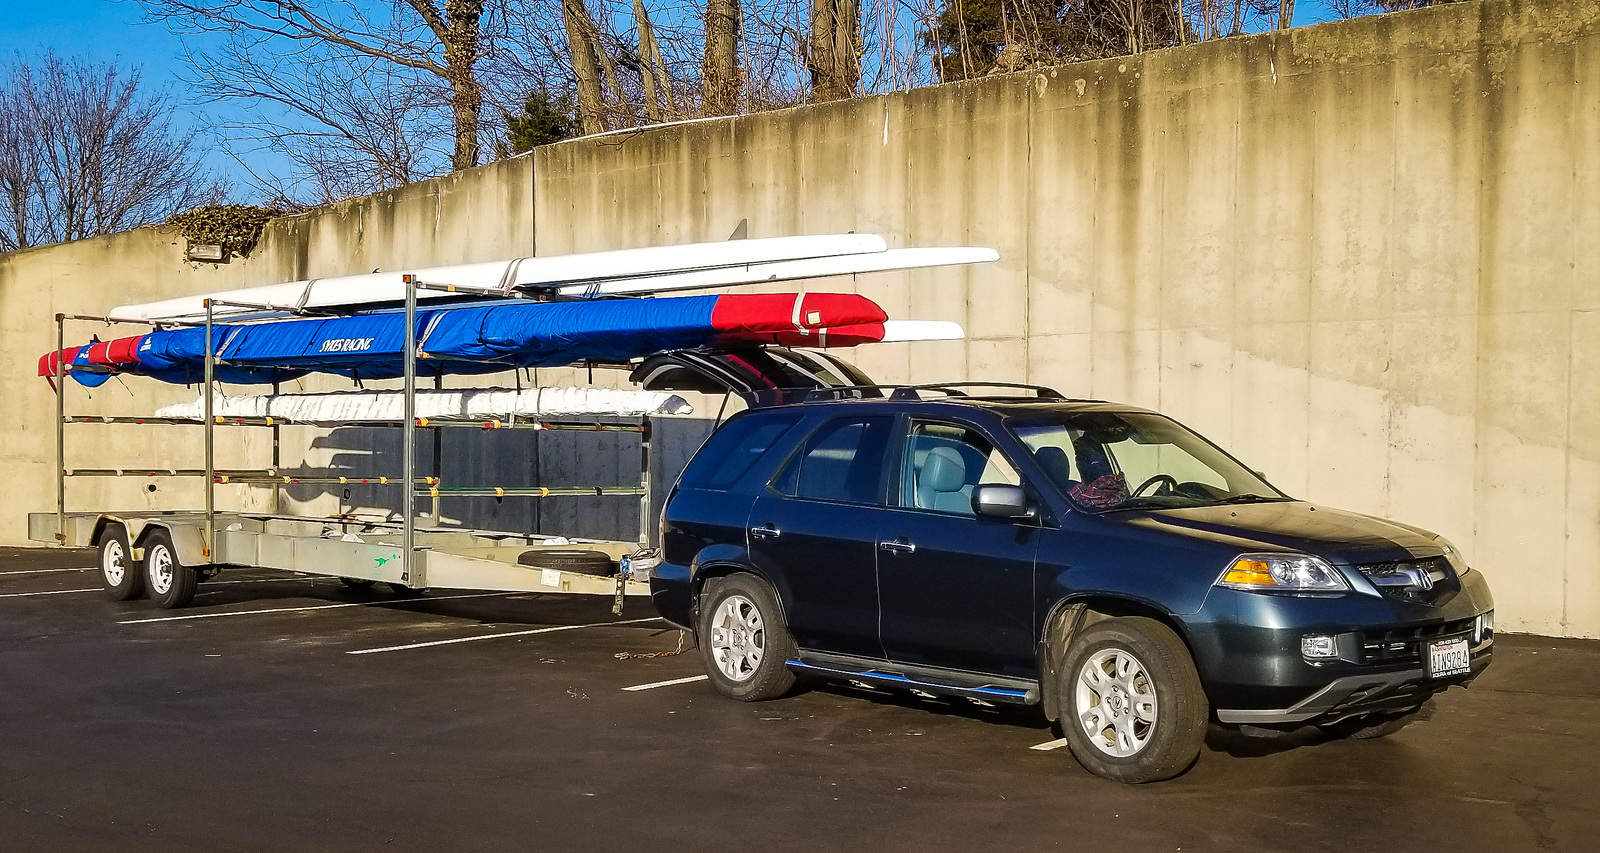 Back to our originally-scheduled program. Here's Richard's car hooked up to Richard's boat trailer. After a two day delay, we're finally ready to start the long trip back home.